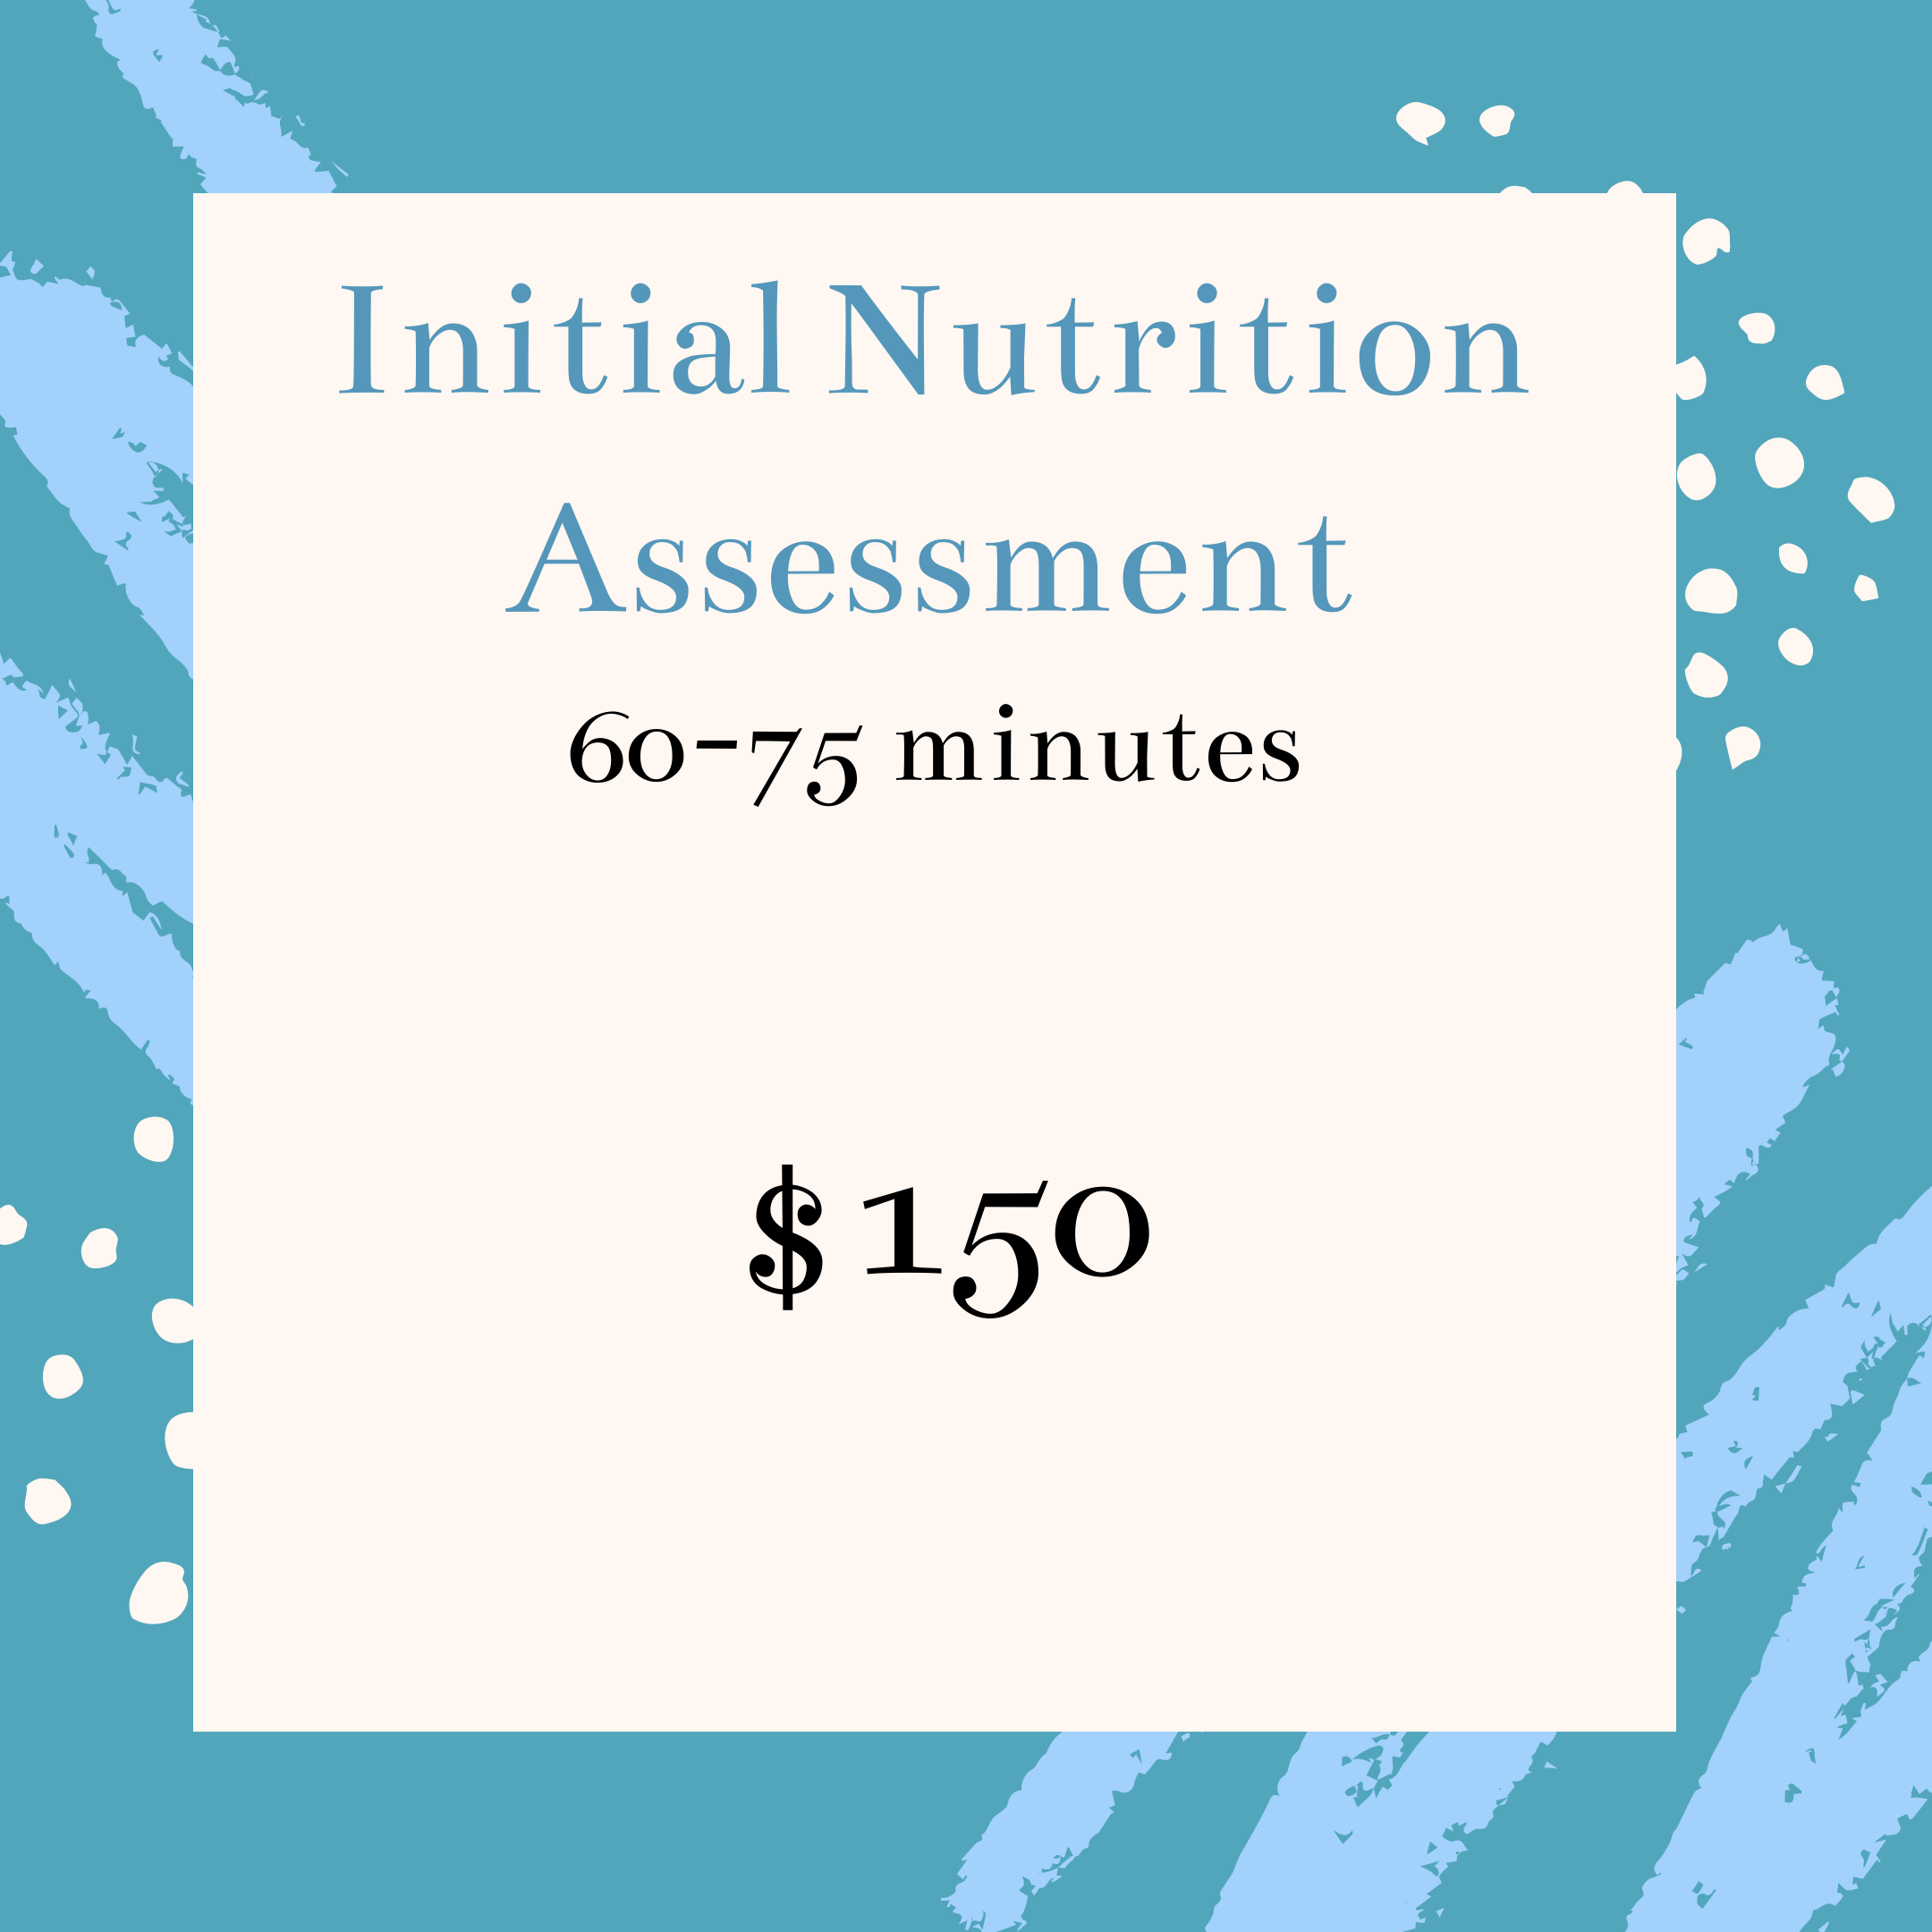 Initial Nutrition Counseling